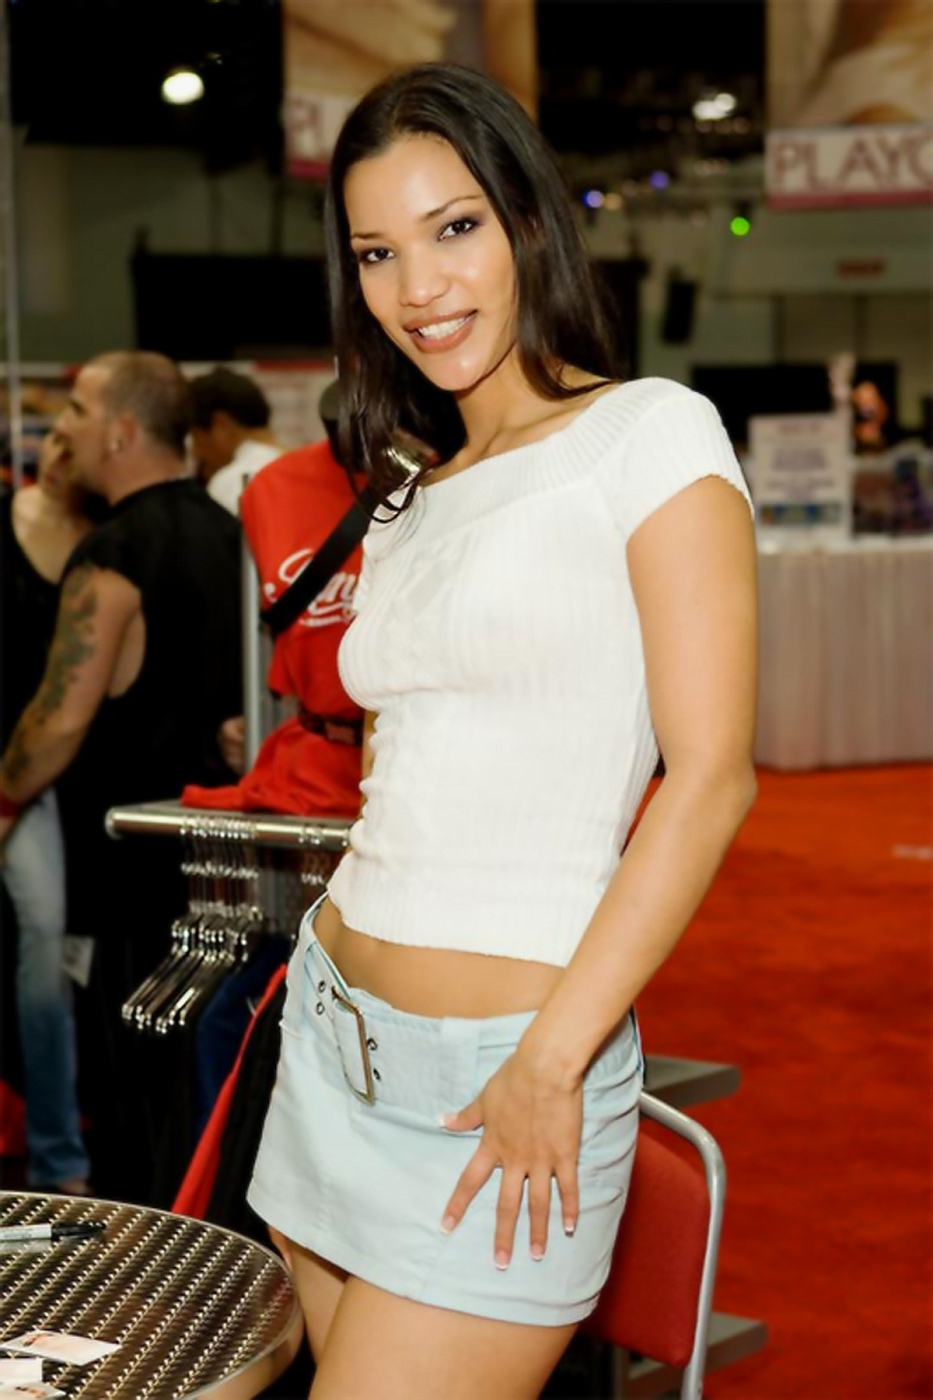 Adriana sage photo images 608